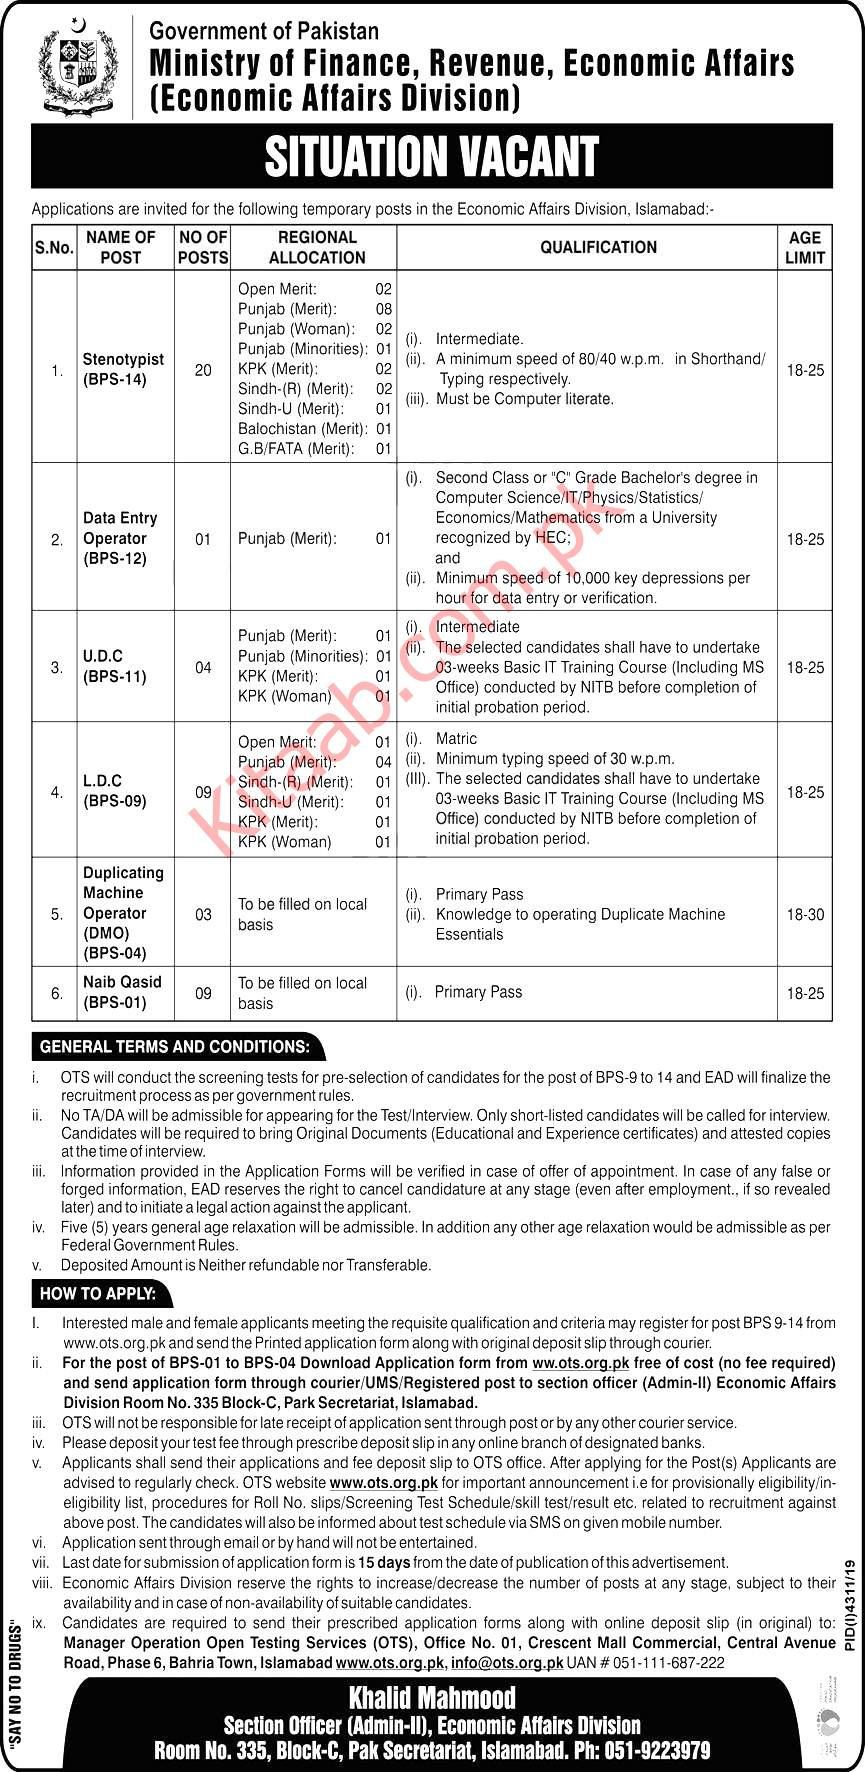 Ministry of Finance, Revenue & Economic Affairs Pakistan Jobs 2021